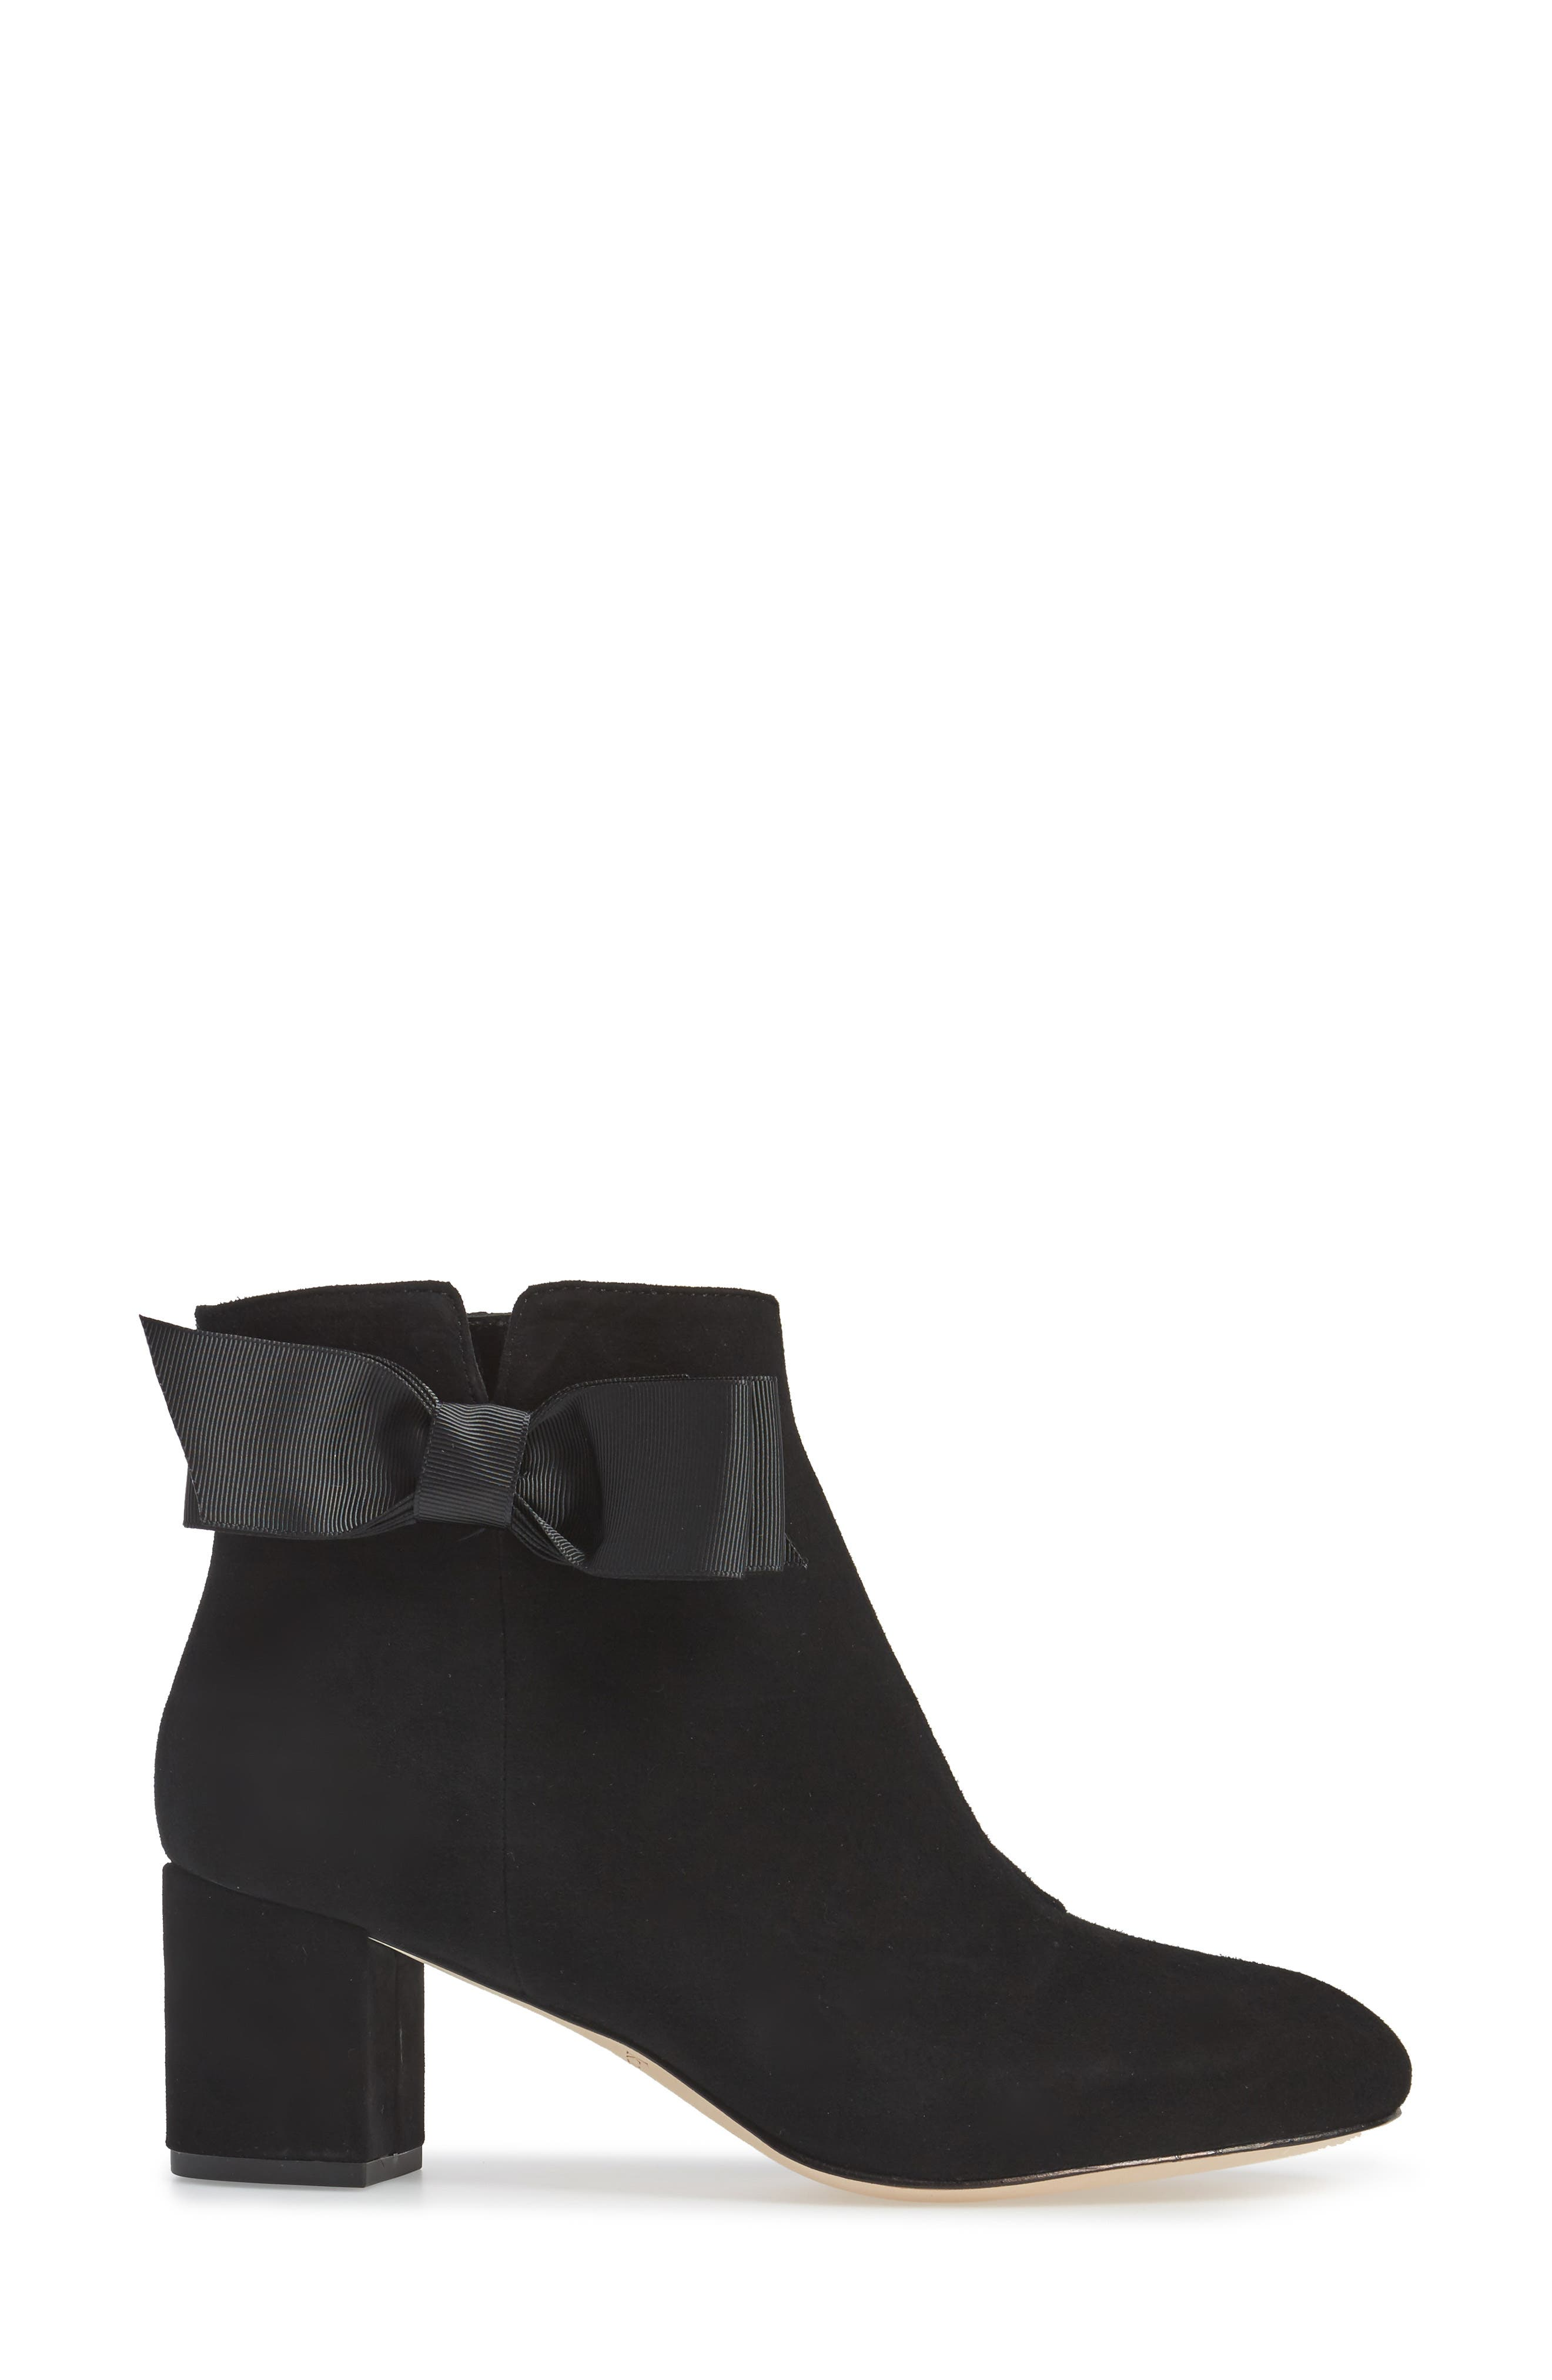 langley bow bootie,                             Alternate thumbnail 3, color,                             001